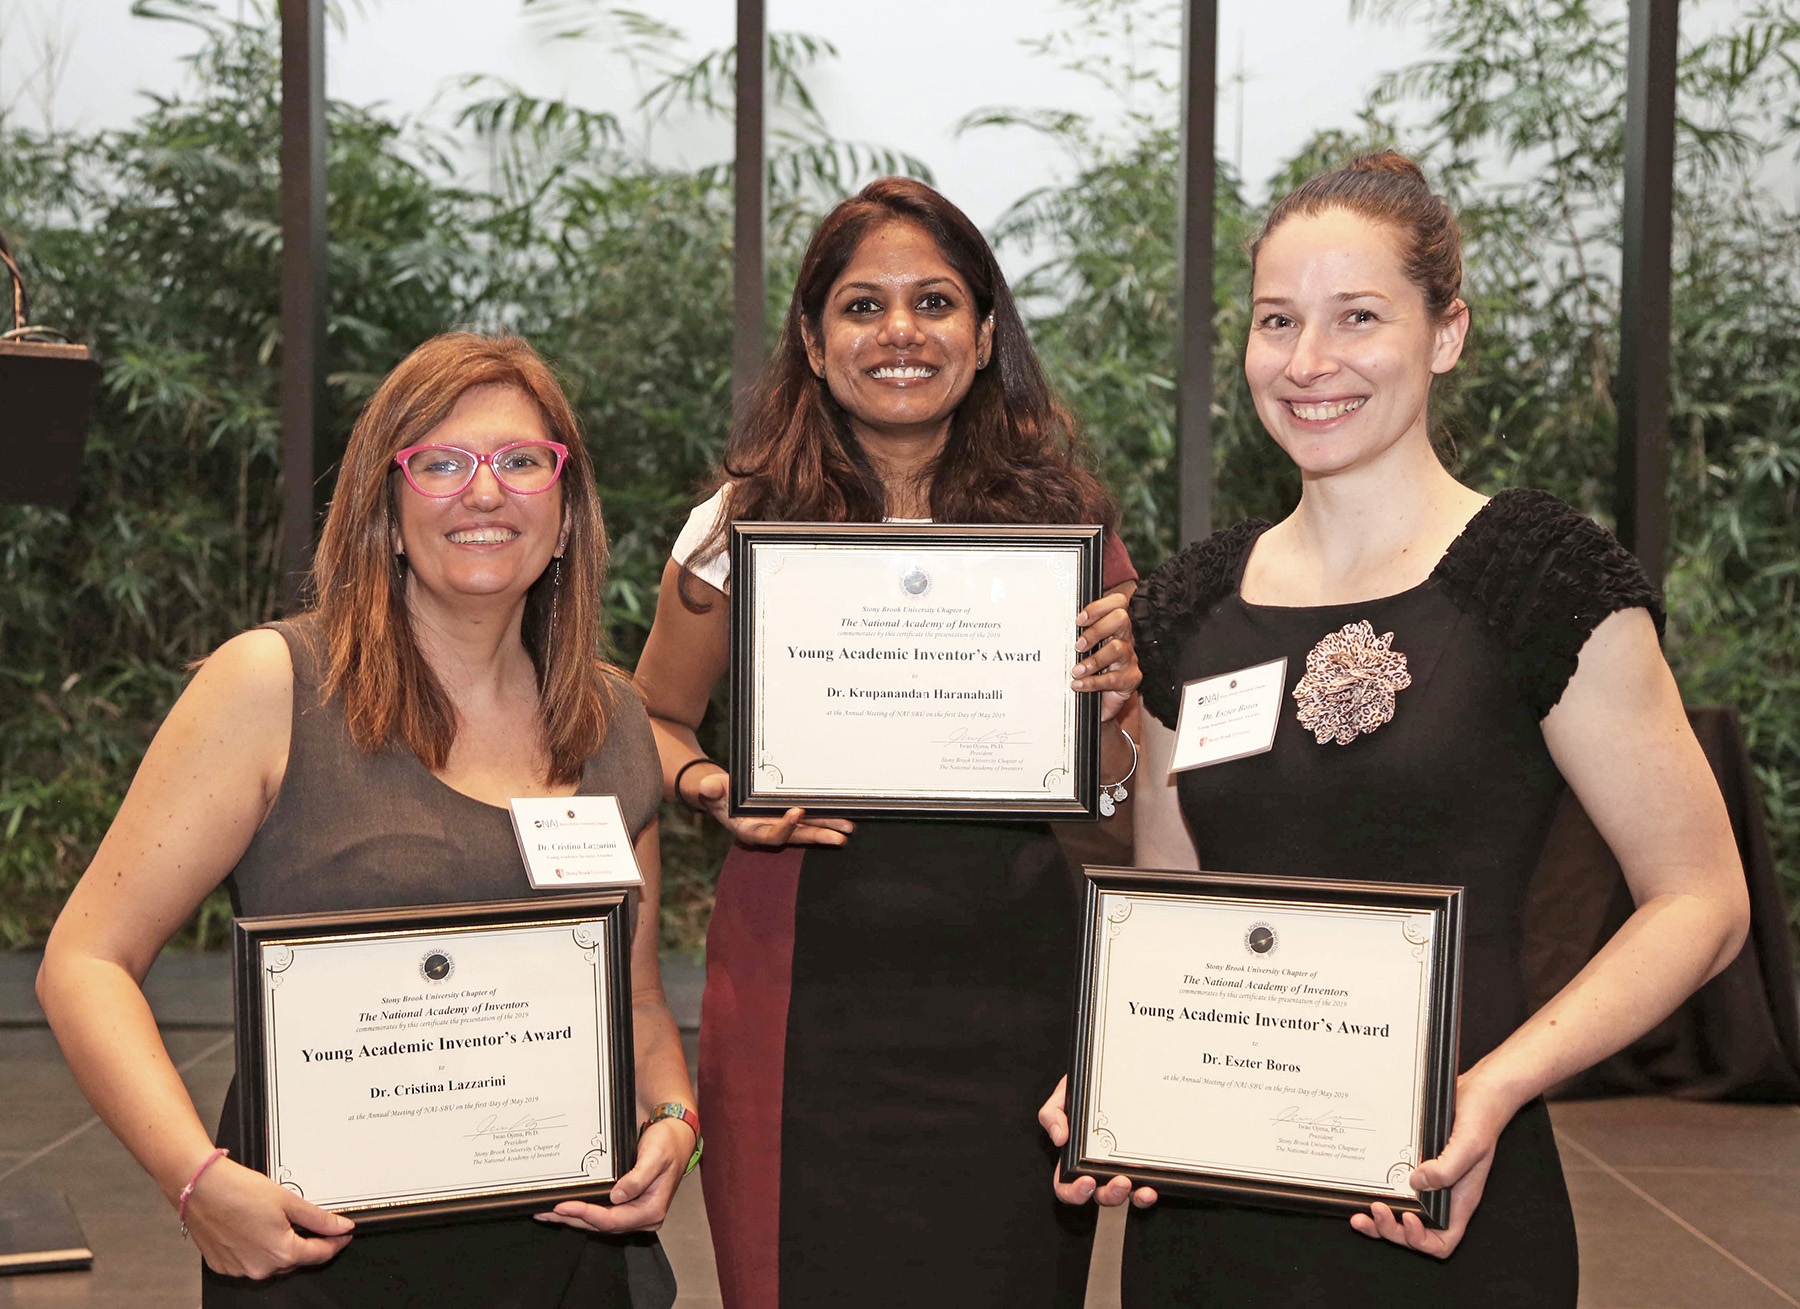 Left to right: Young Academic Award winners Drs. Cristina Lazzarini, Krupanandan Haranahalli and Eszter Boros